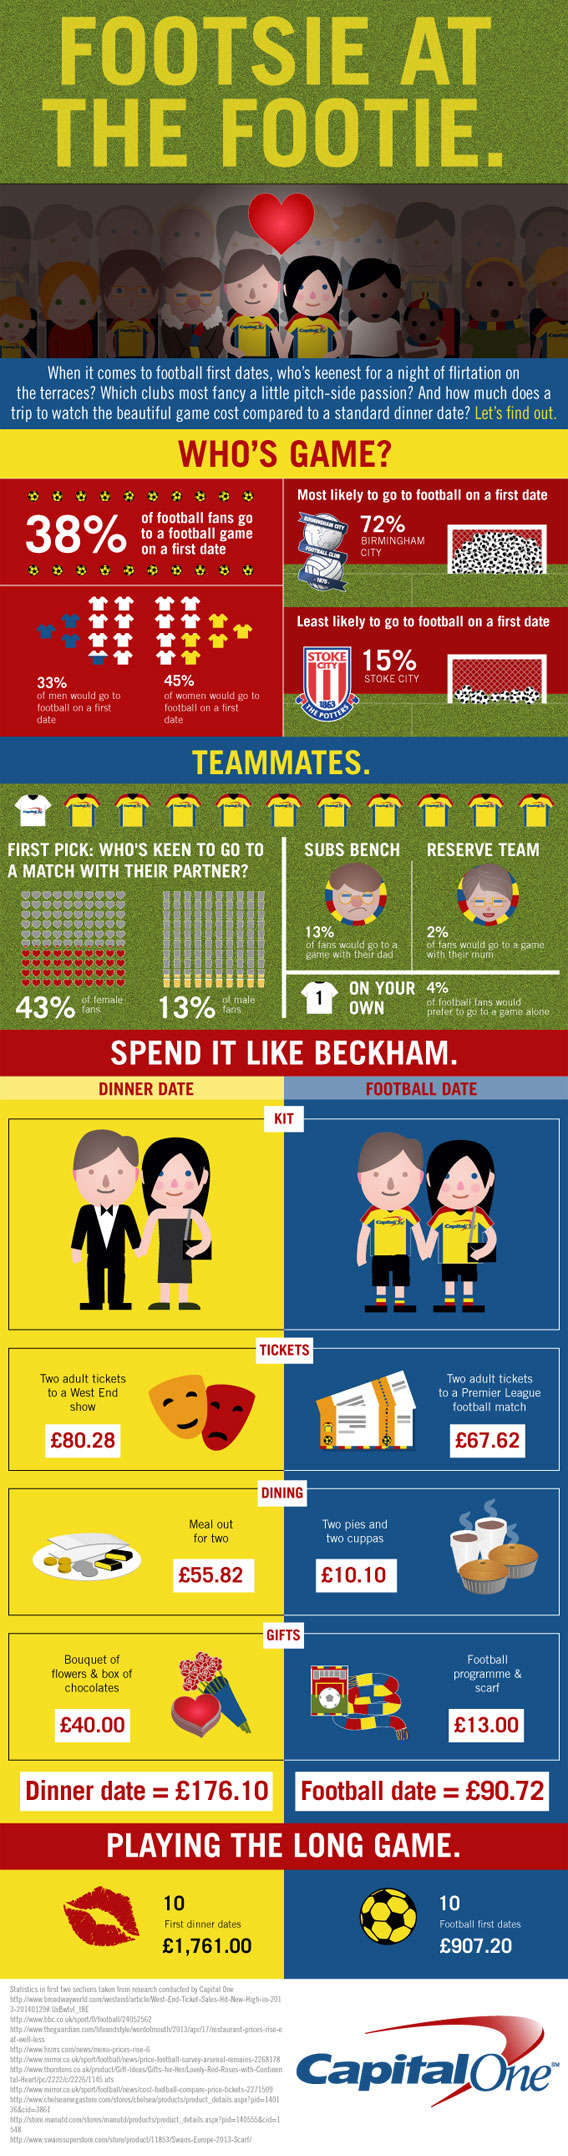 football-fan-vs-traditional-dates-infographic